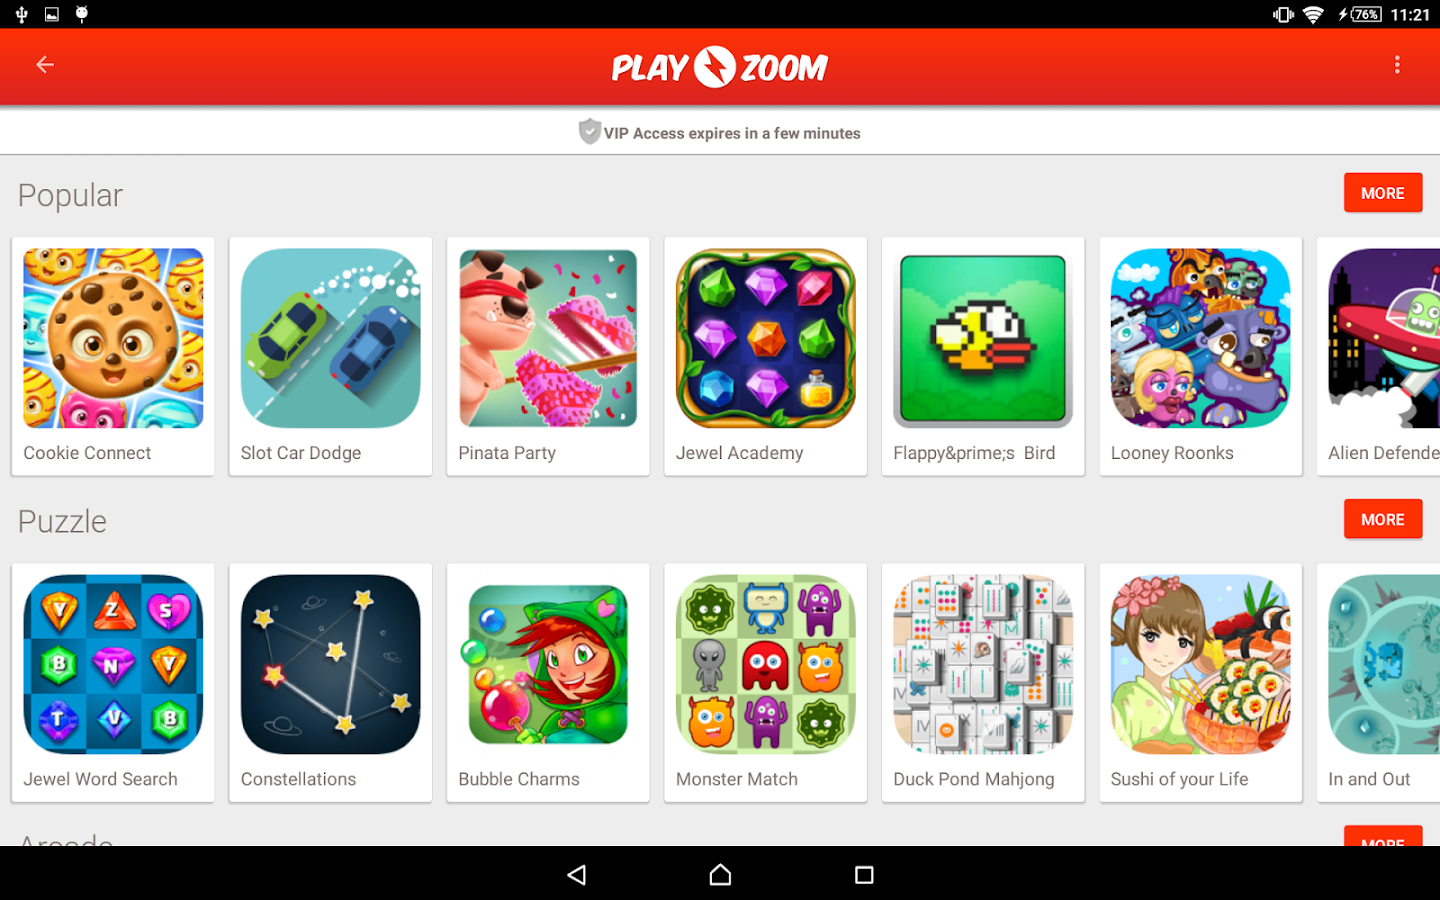 Playzoom Screenshot 5